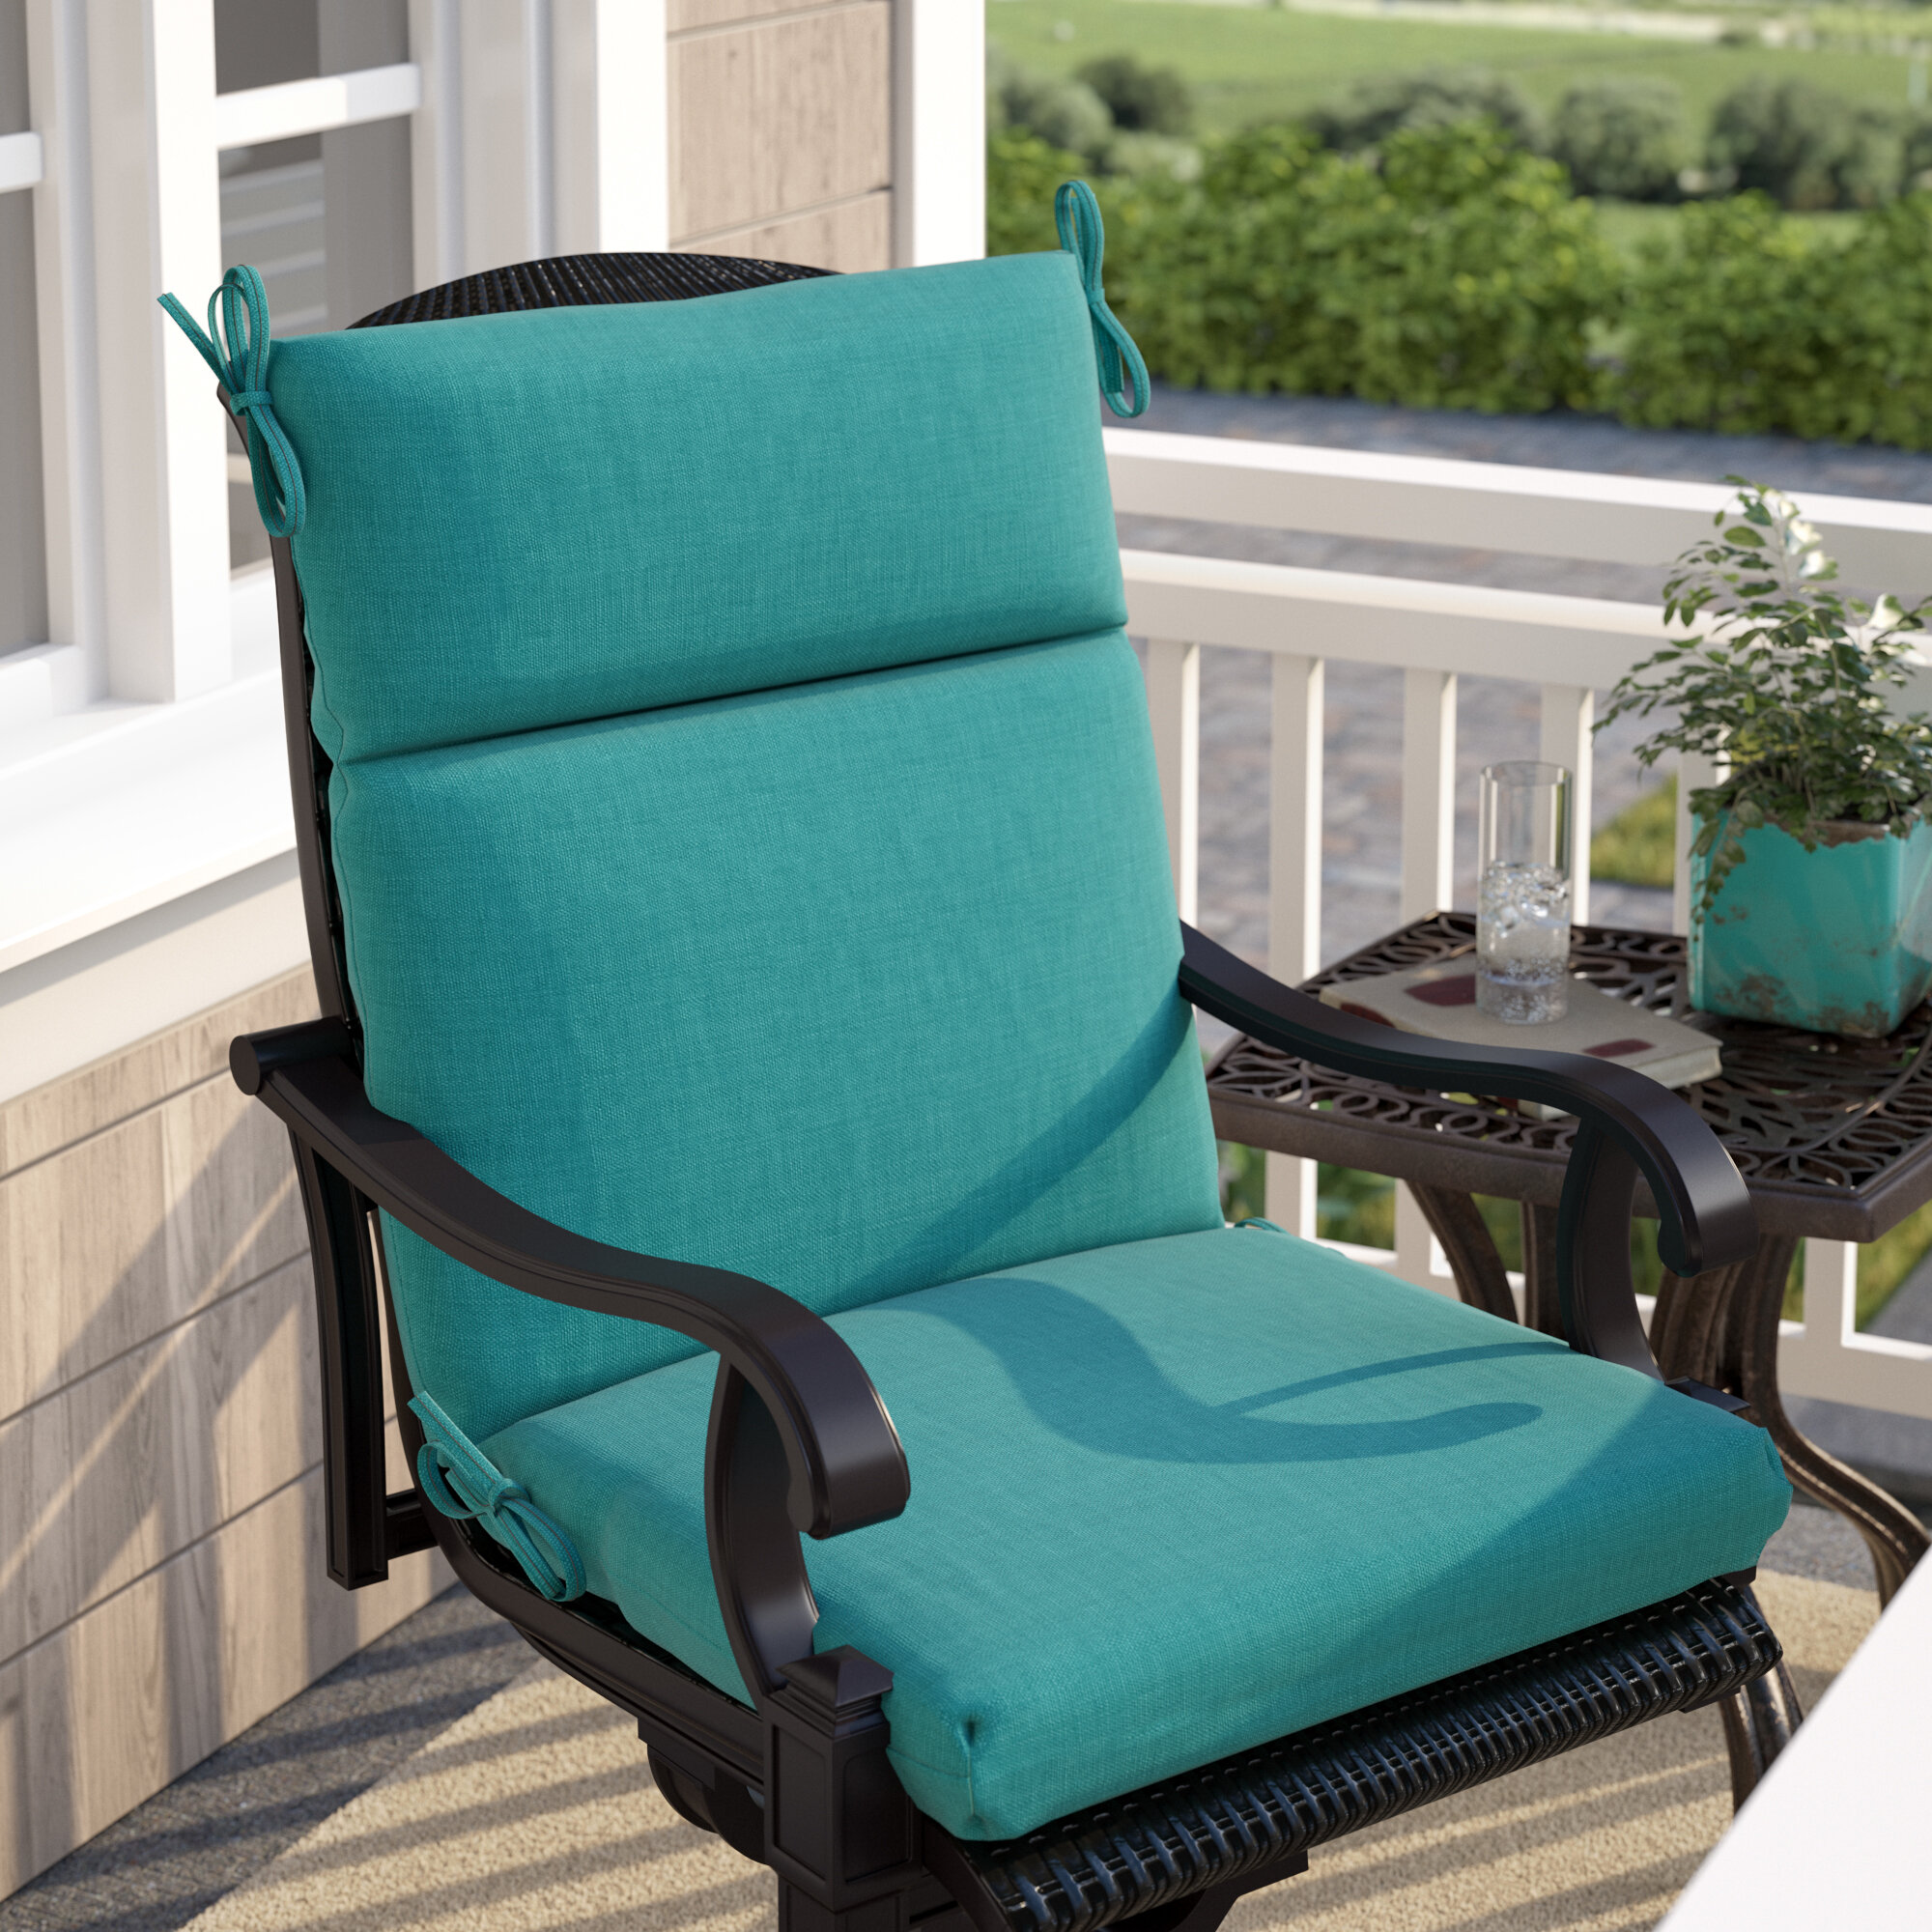 Groovy Indoor Outdoor Lounge Chair Cushion Beutiful Home Inspiration Aditmahrainfo